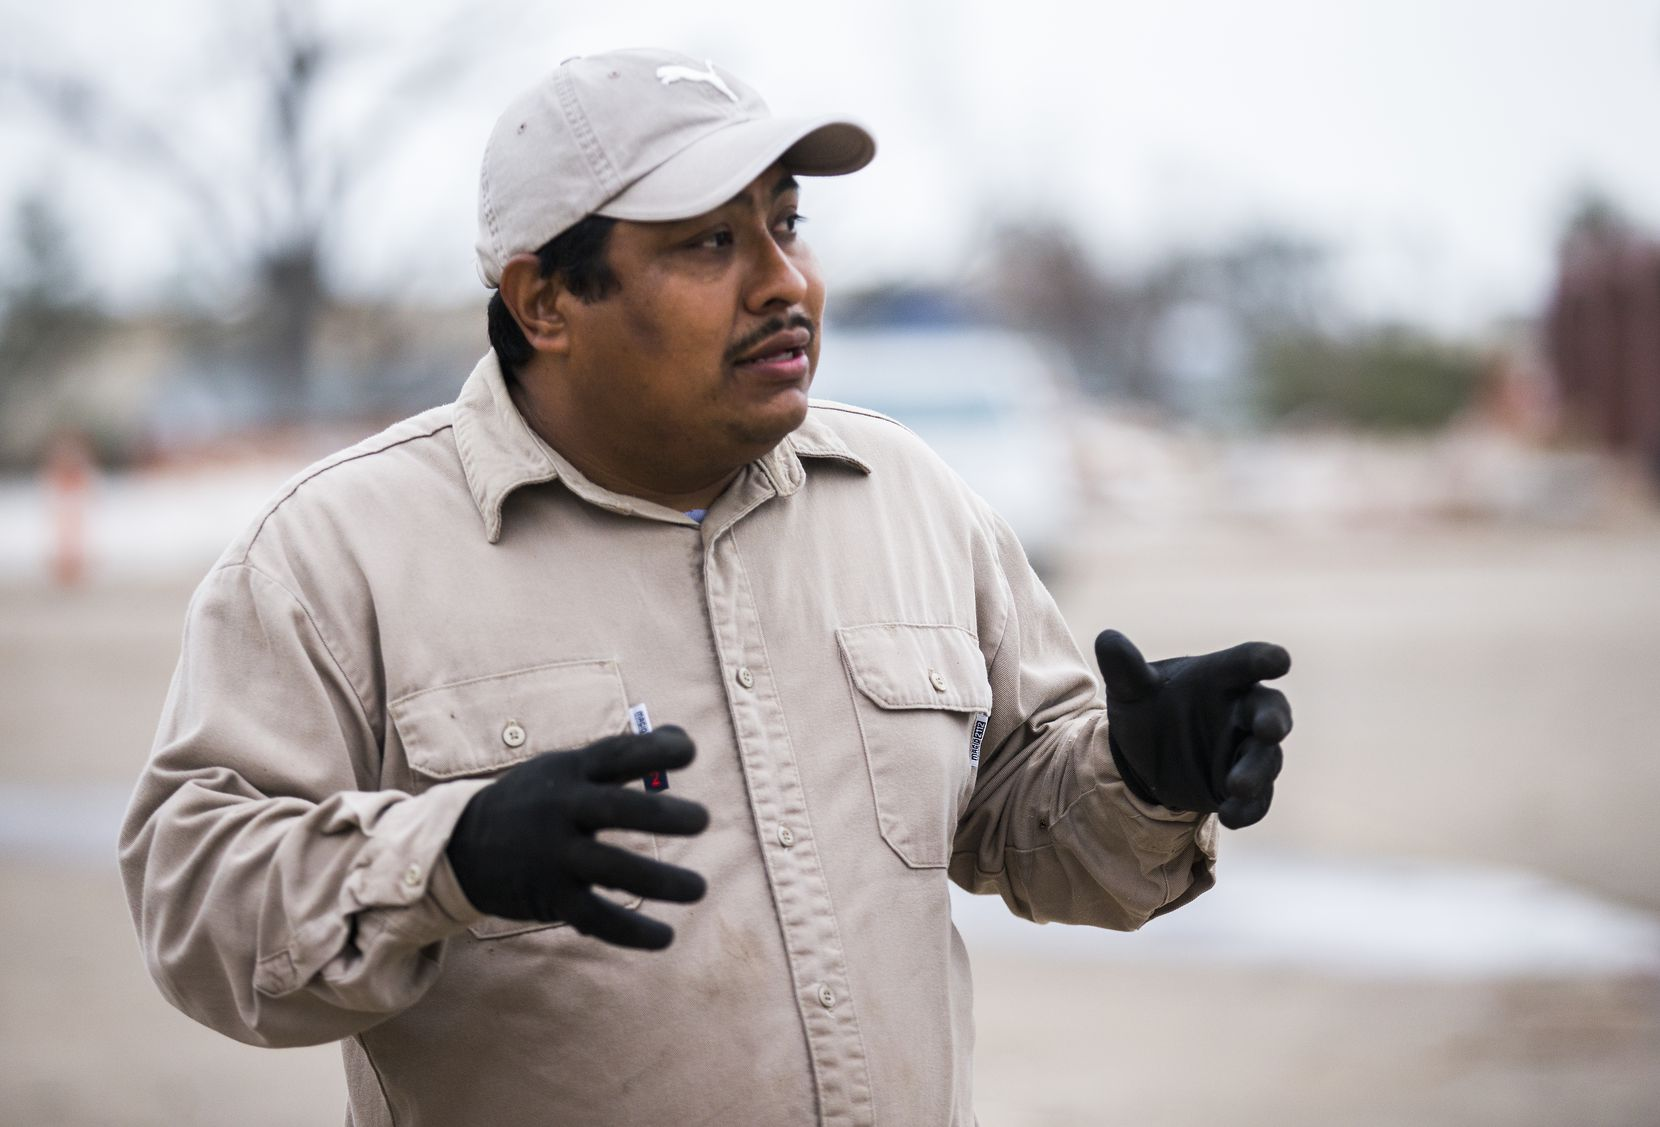 Member Jesus Gonzalez talks about the cleanup efforts at Primera Iglesia Bautista Mexicana on Tuesday in Dallas. The church was destroyed by a tornado last month.